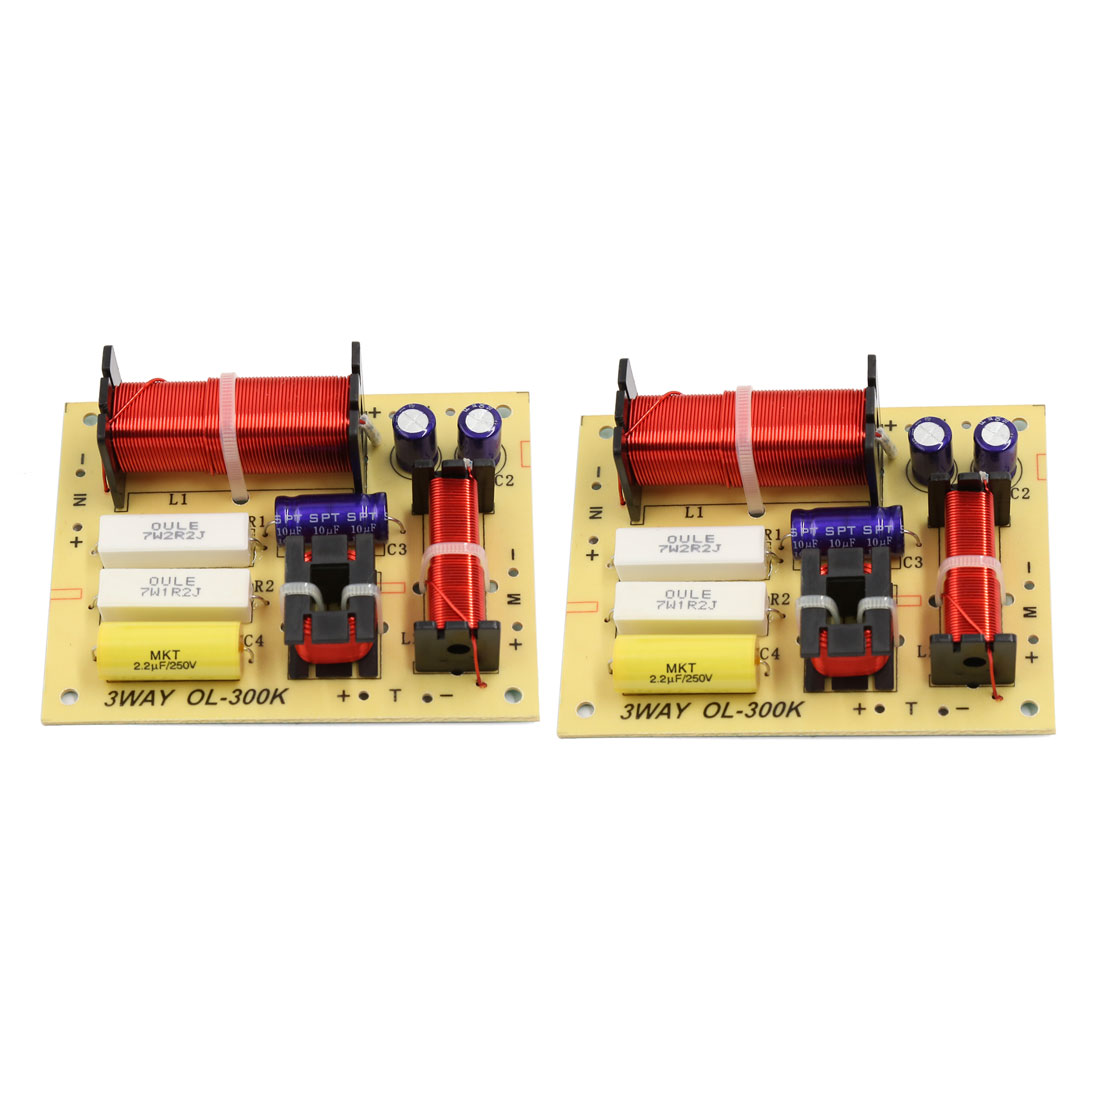 2pcs 180W Hi-Fi Speaker Audio Frequency Divider 3 Way Crossover Filters 4-8 Ohms